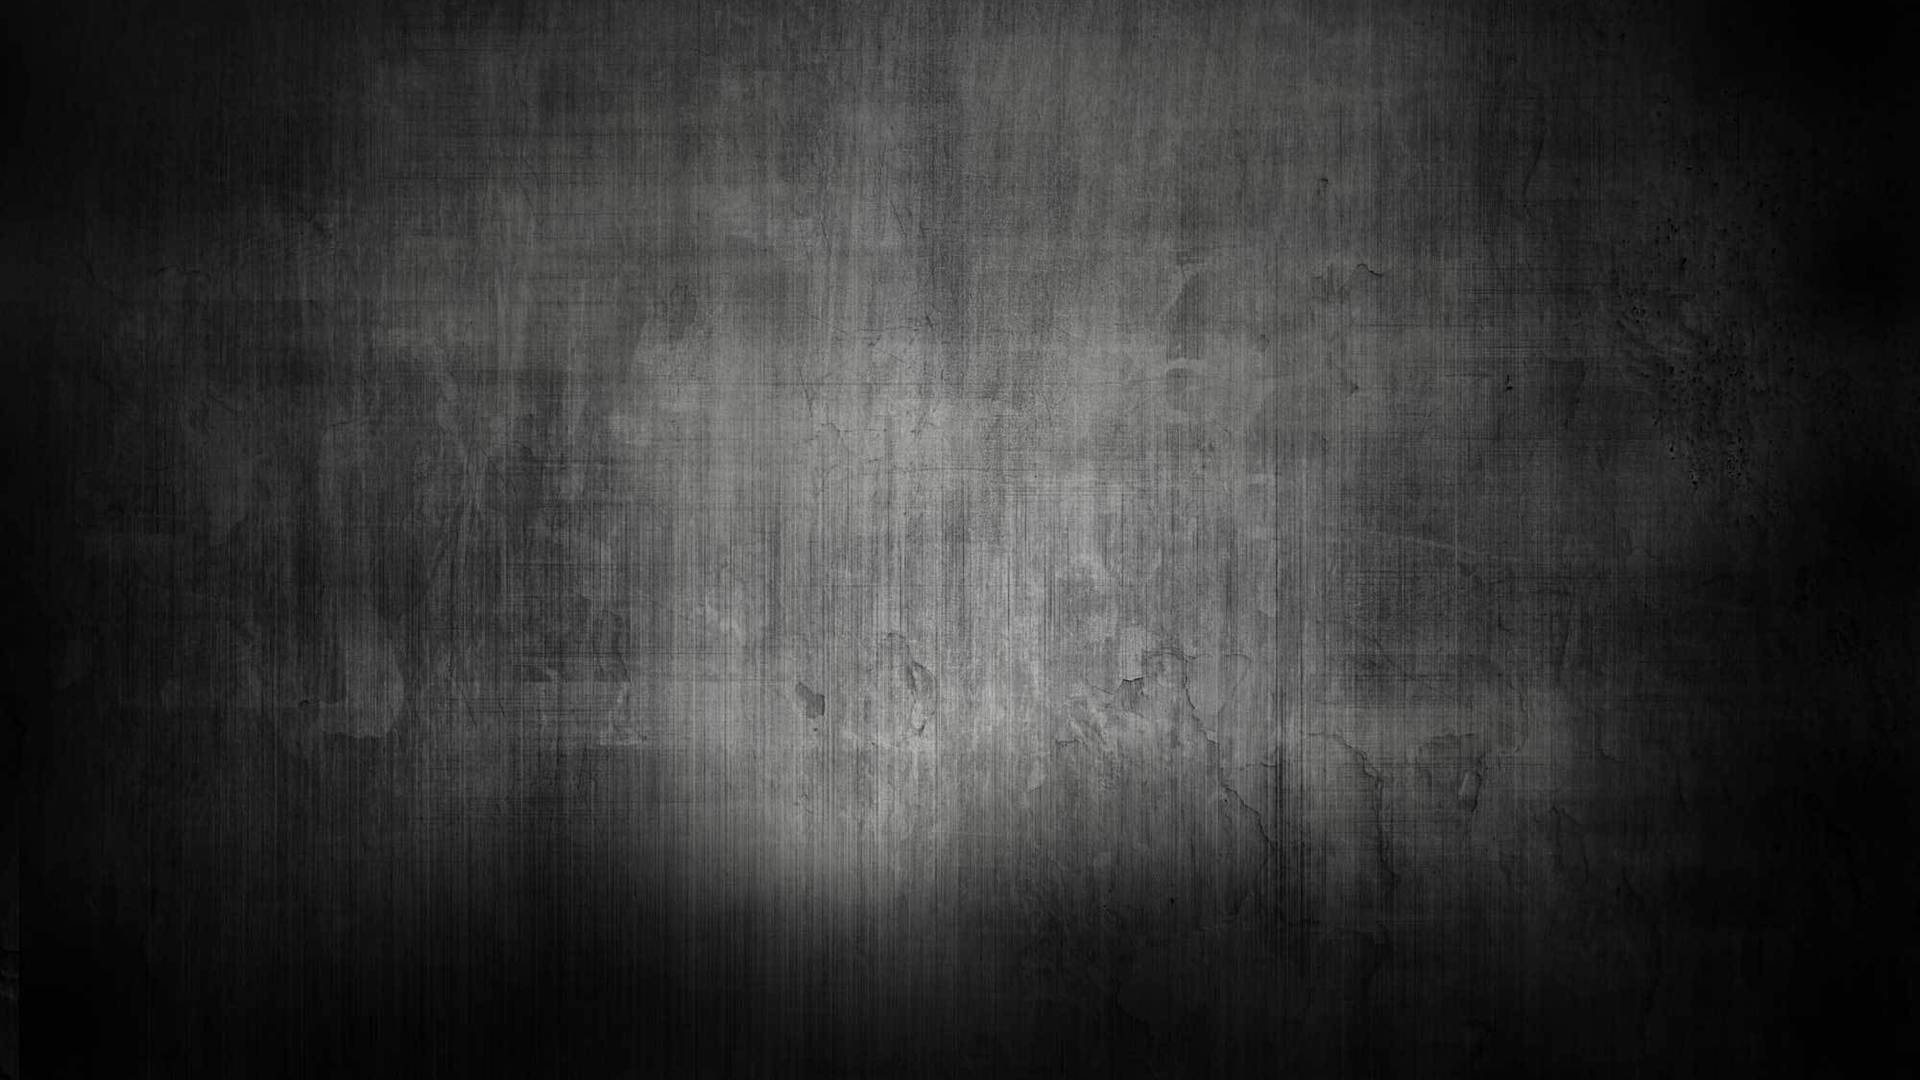 Texture Background Image Texture Backgrounds 7